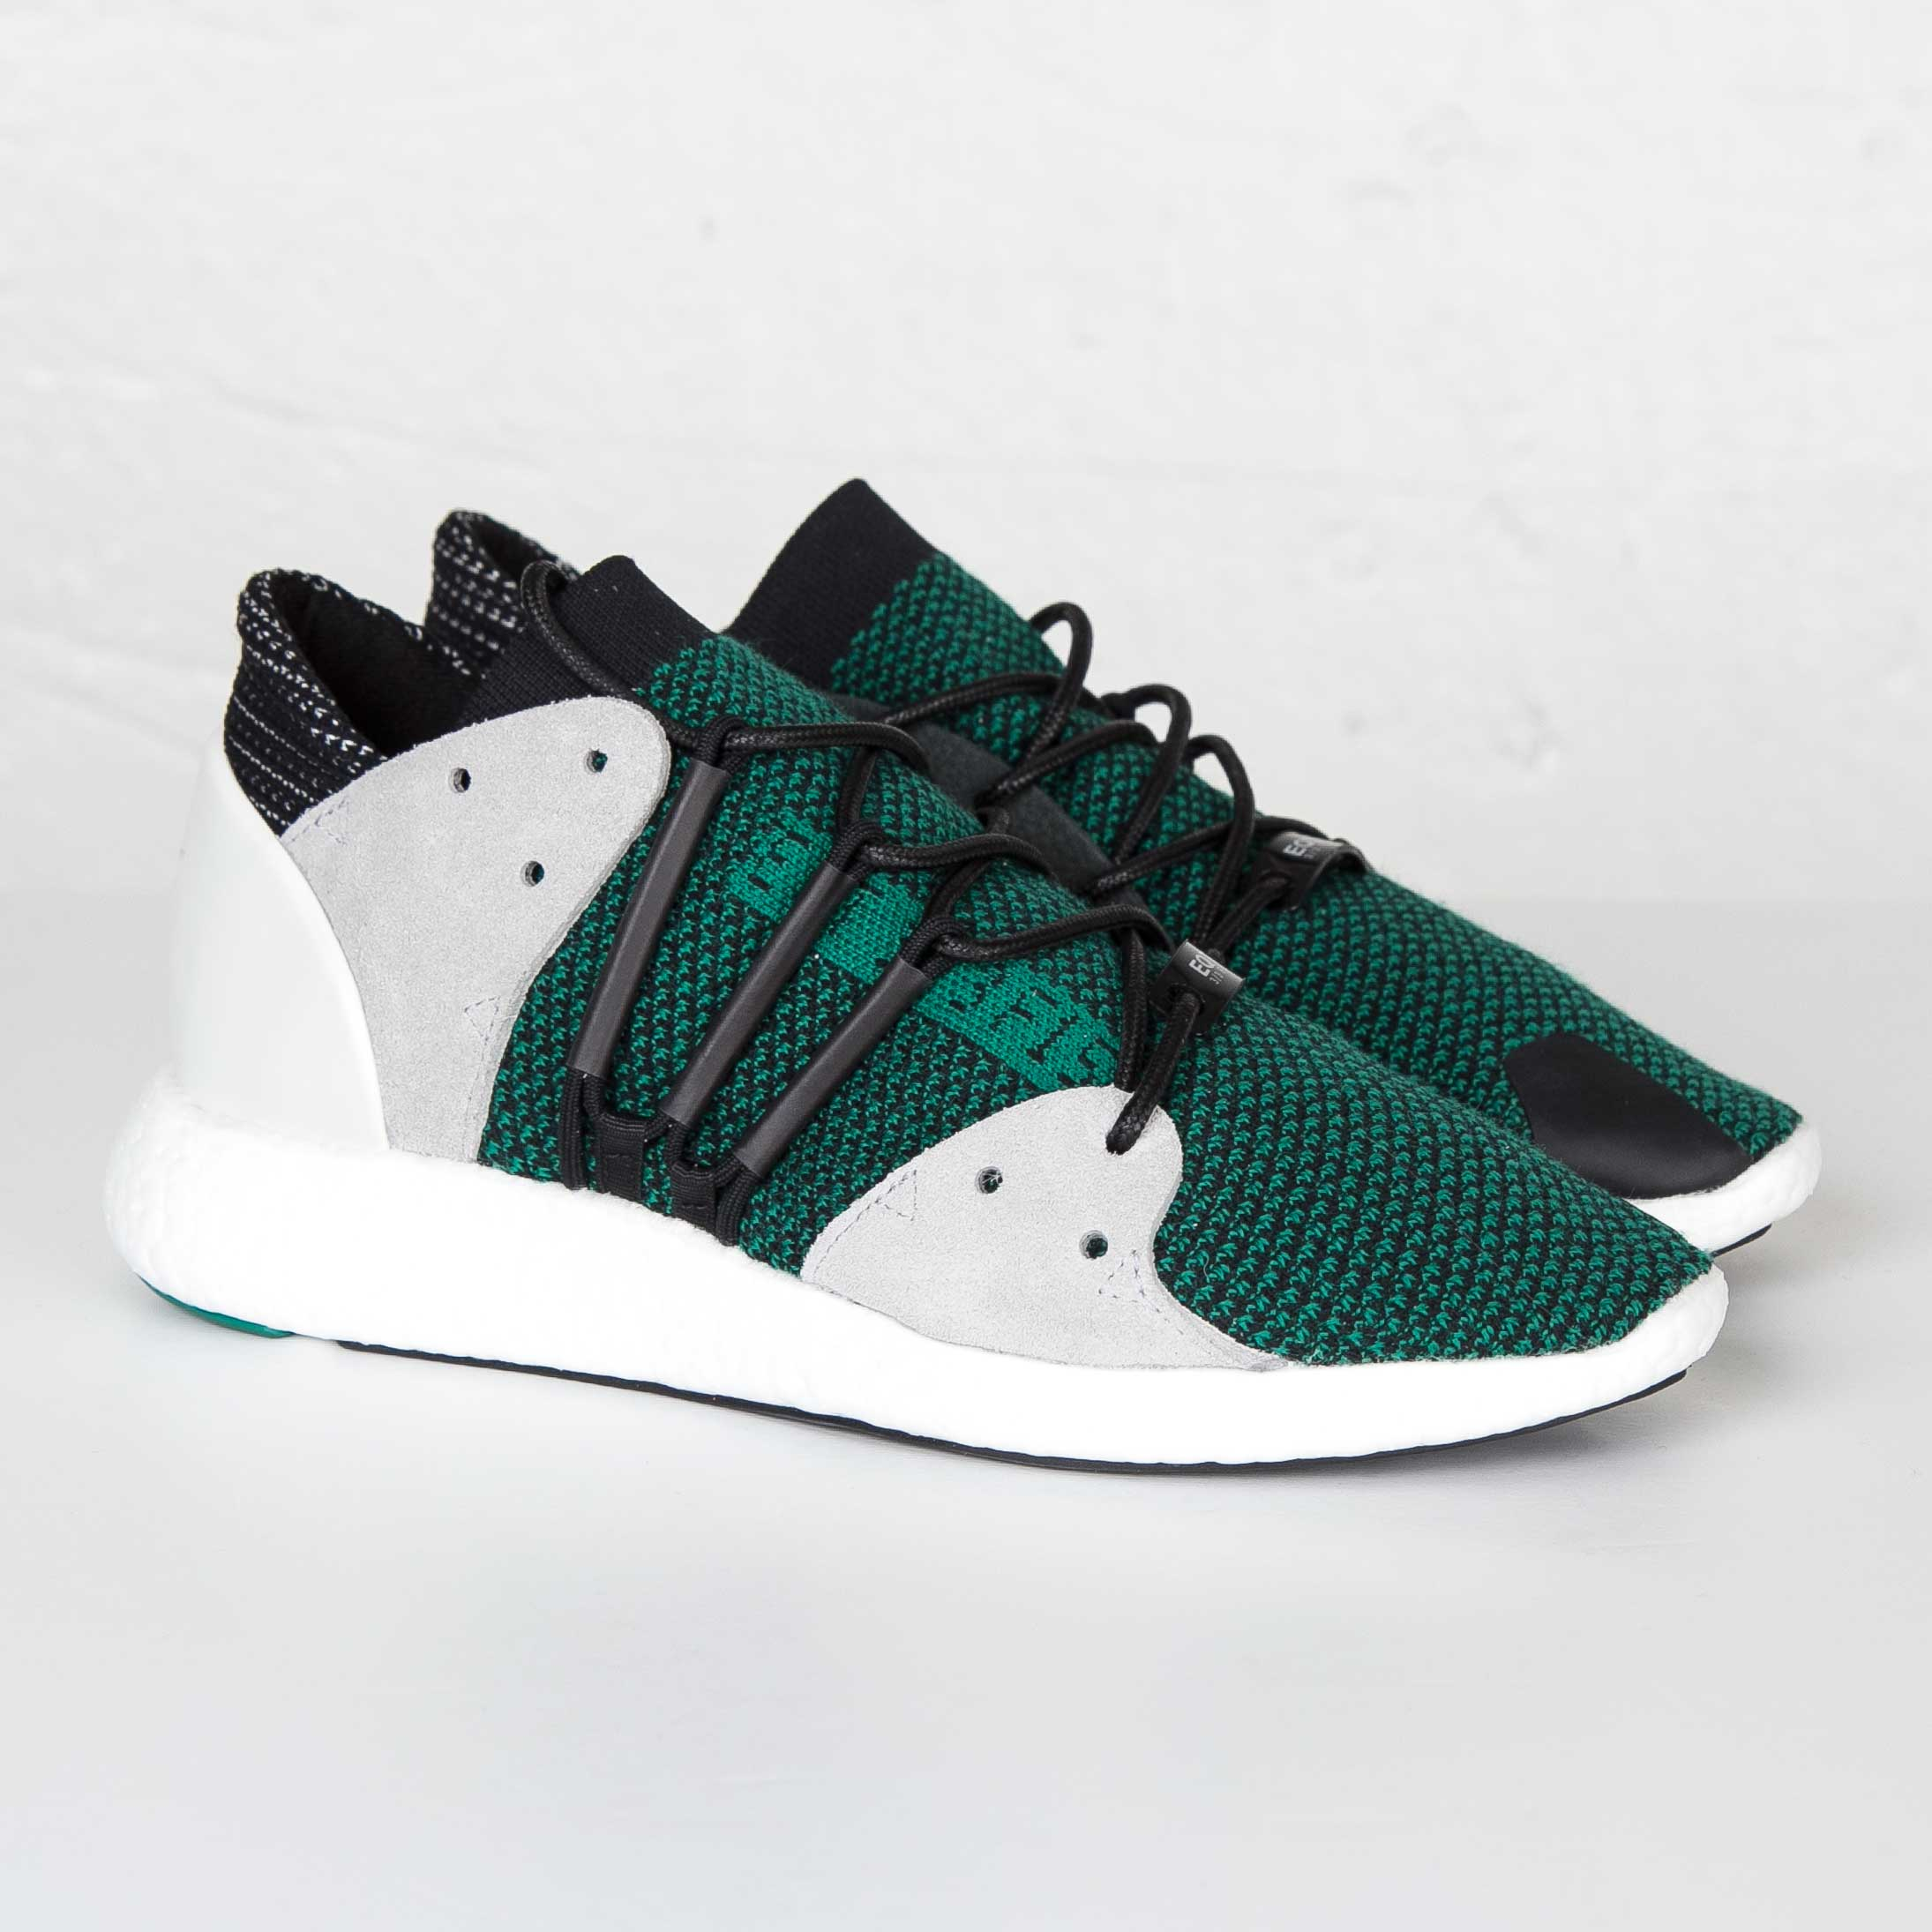 official photos 713df 3cdab adidas EQT 33 F15 OG